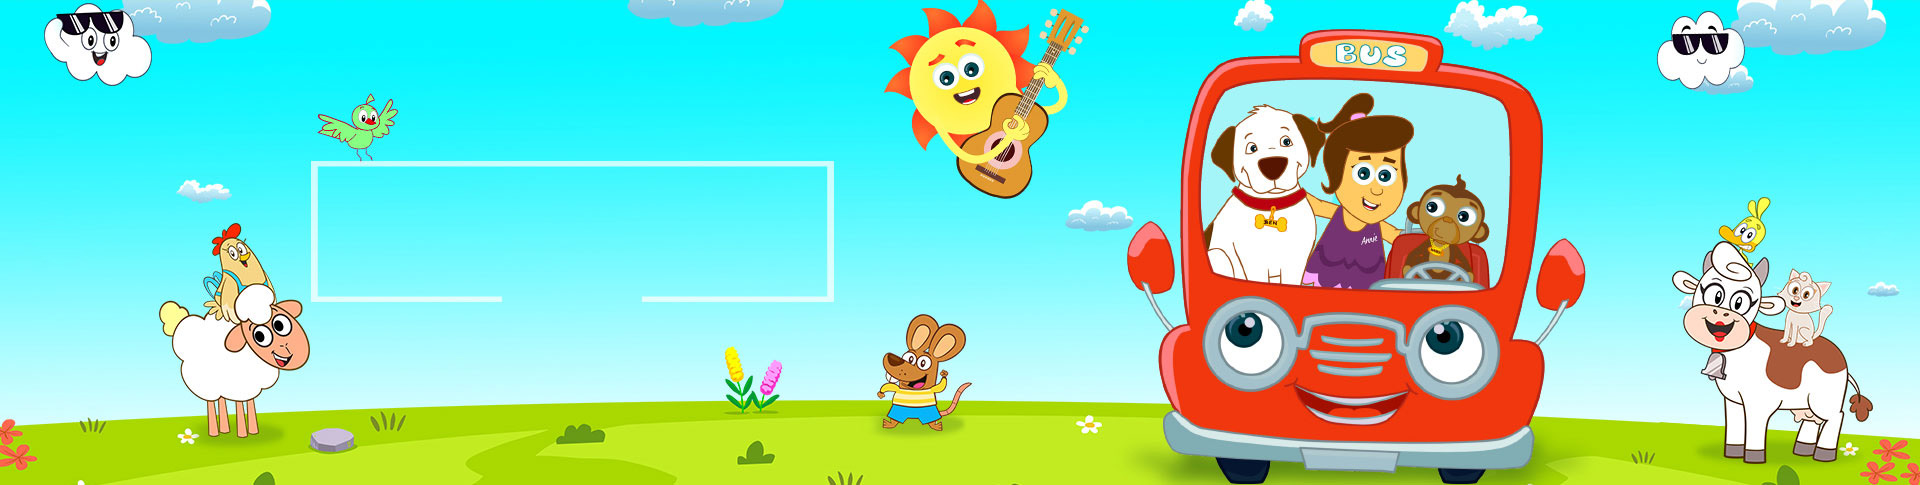 Hooplakidz nursery rhymes for kids banner5